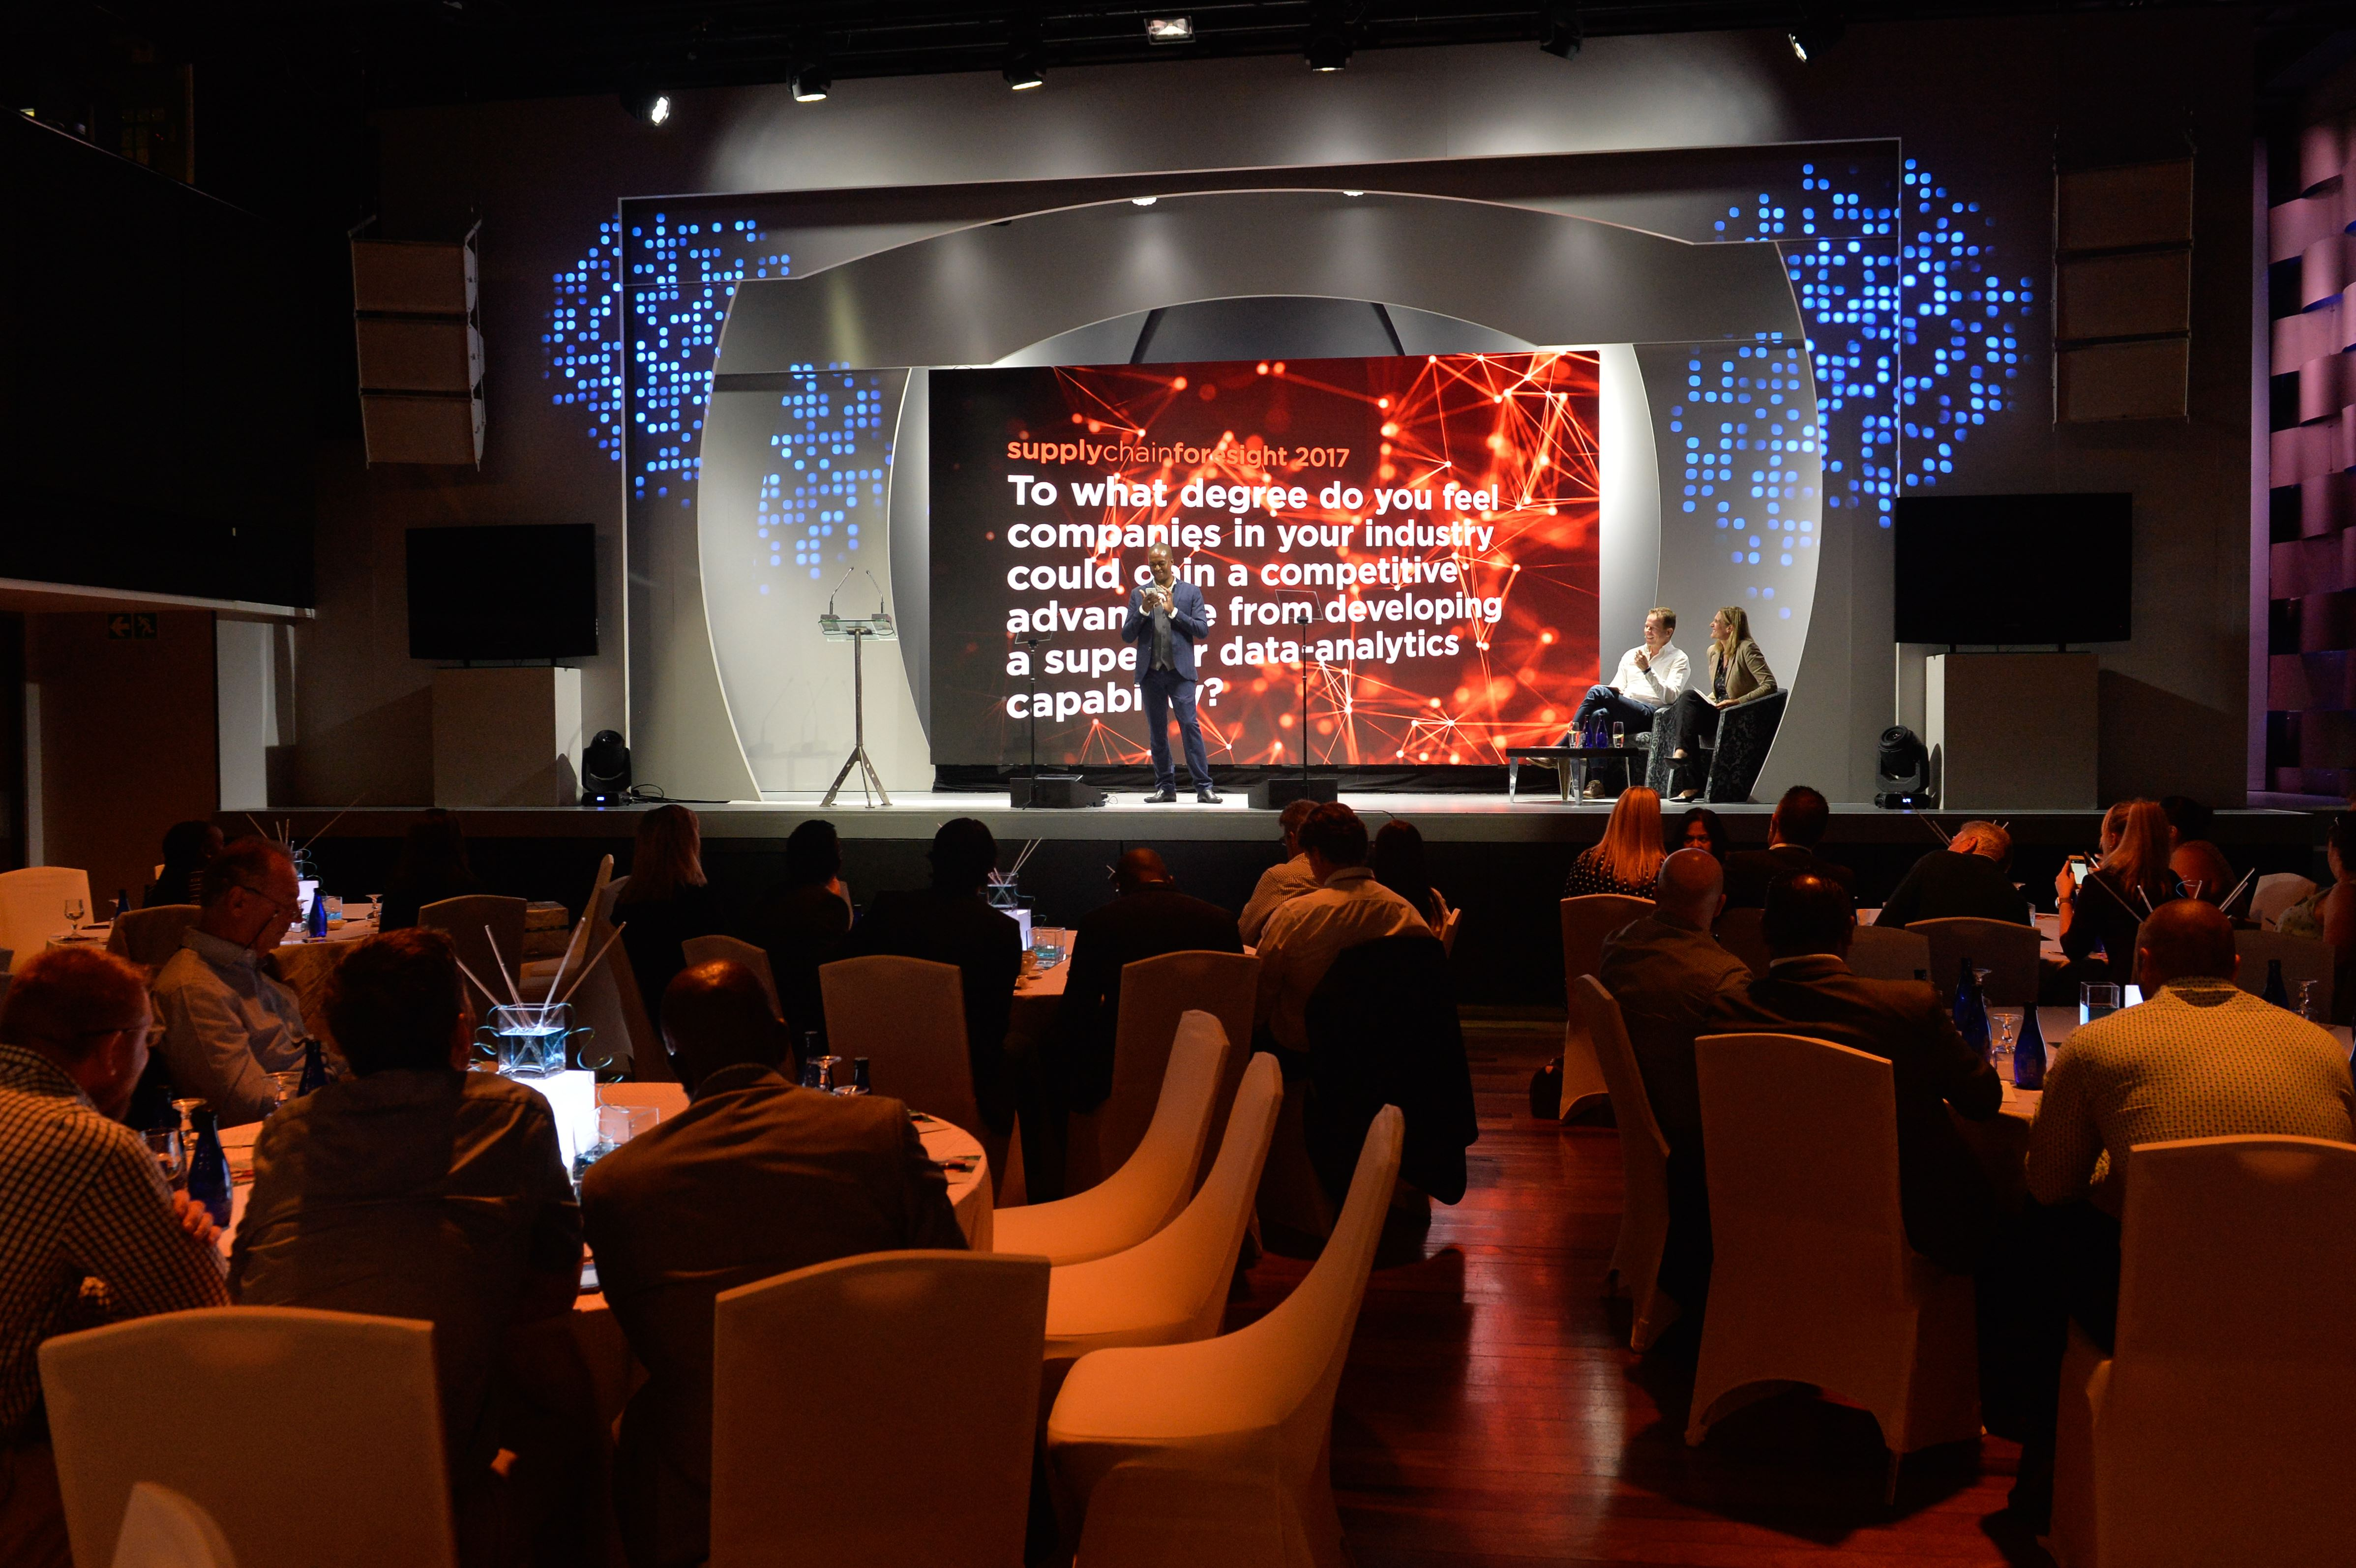 Baraloworld Logistics supplychainforesight stage and screen background